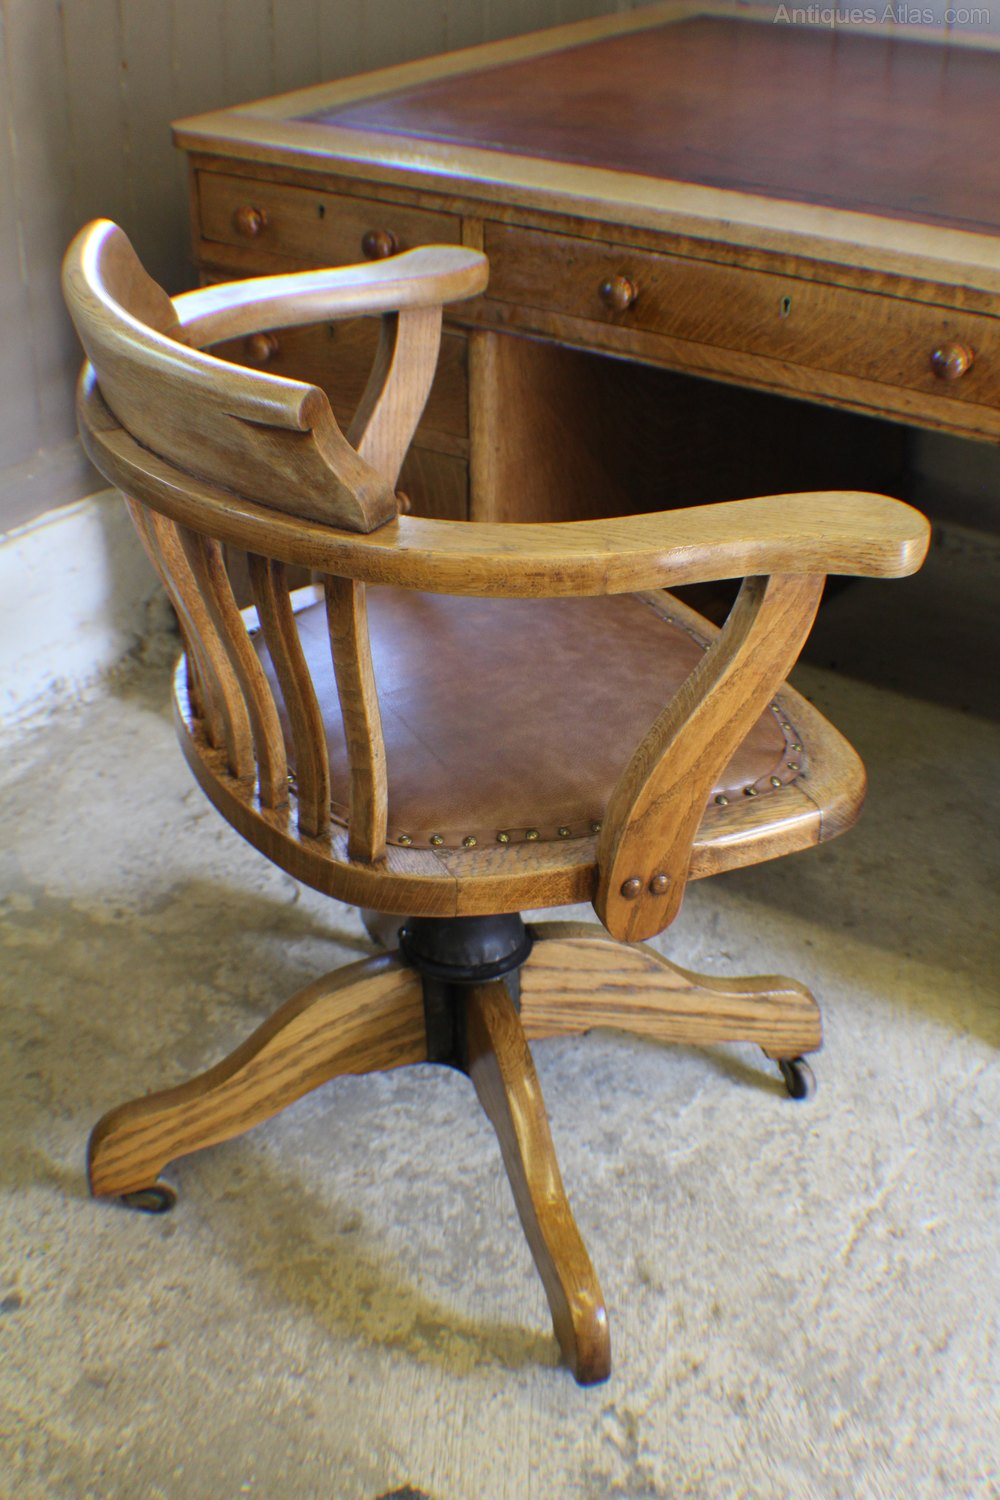 Ordinaire Vintage Oak U0026 1930s Adjustable Desk Office Chair Antique Swivel And  Revolving Chairs Office Desk